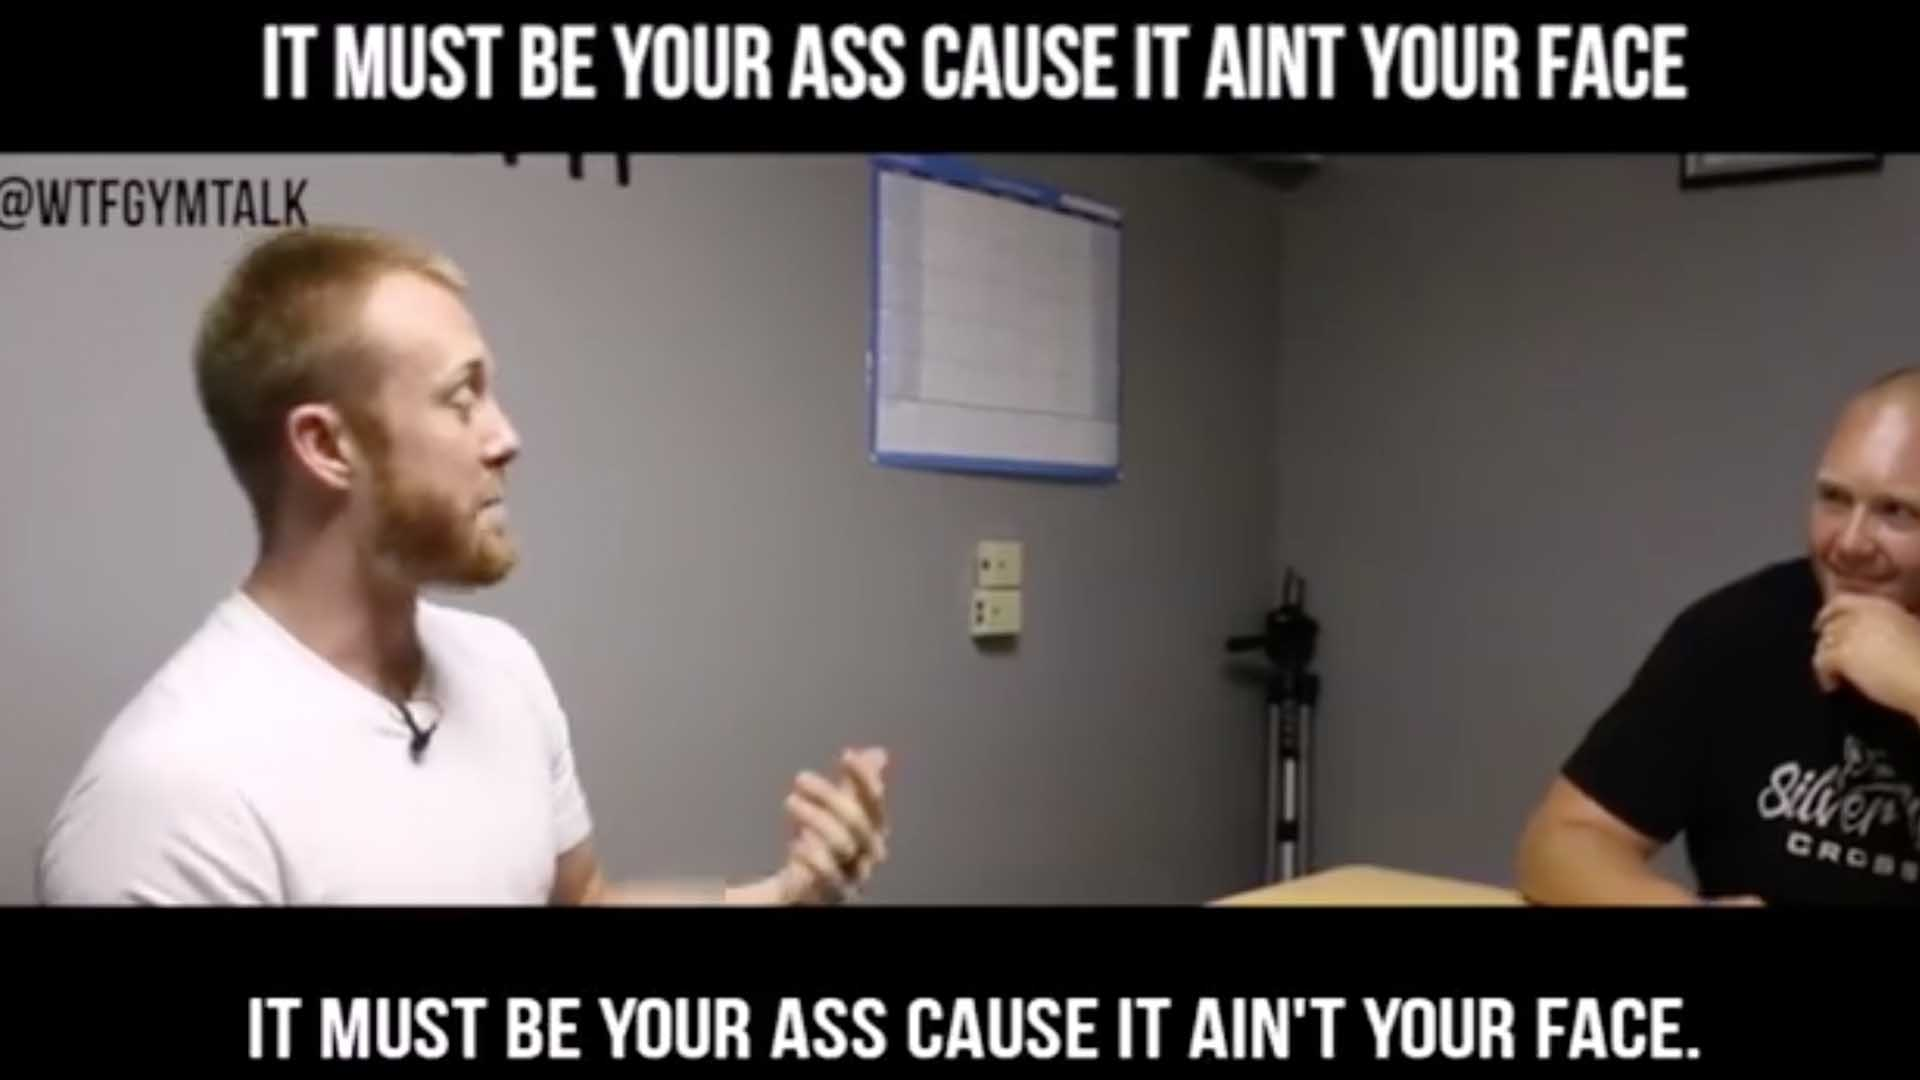 WTF Gym Talk | It Must Be Your Ass, Cause It Ain't Your Face